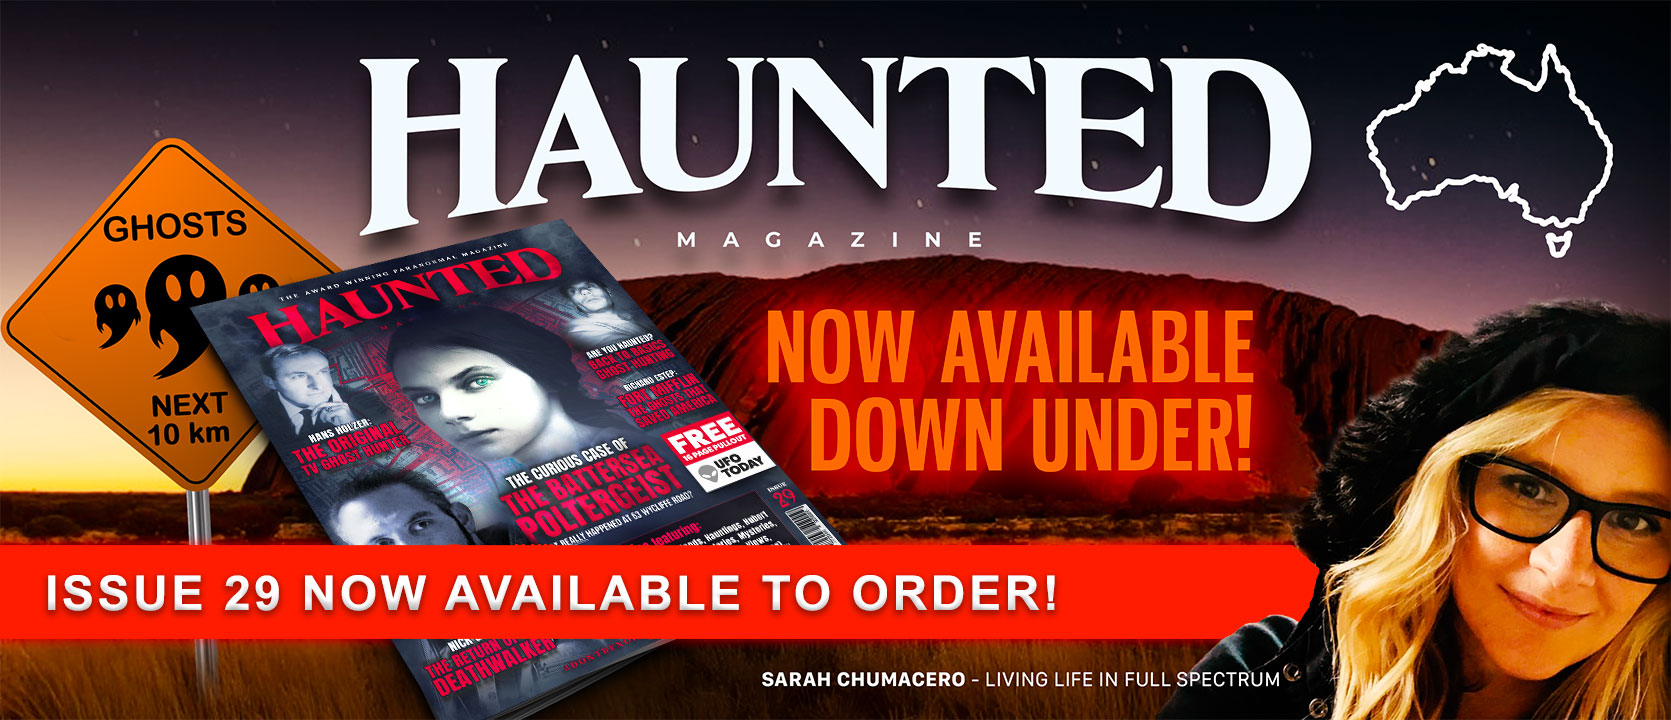 Haunted Magazine Issue 29